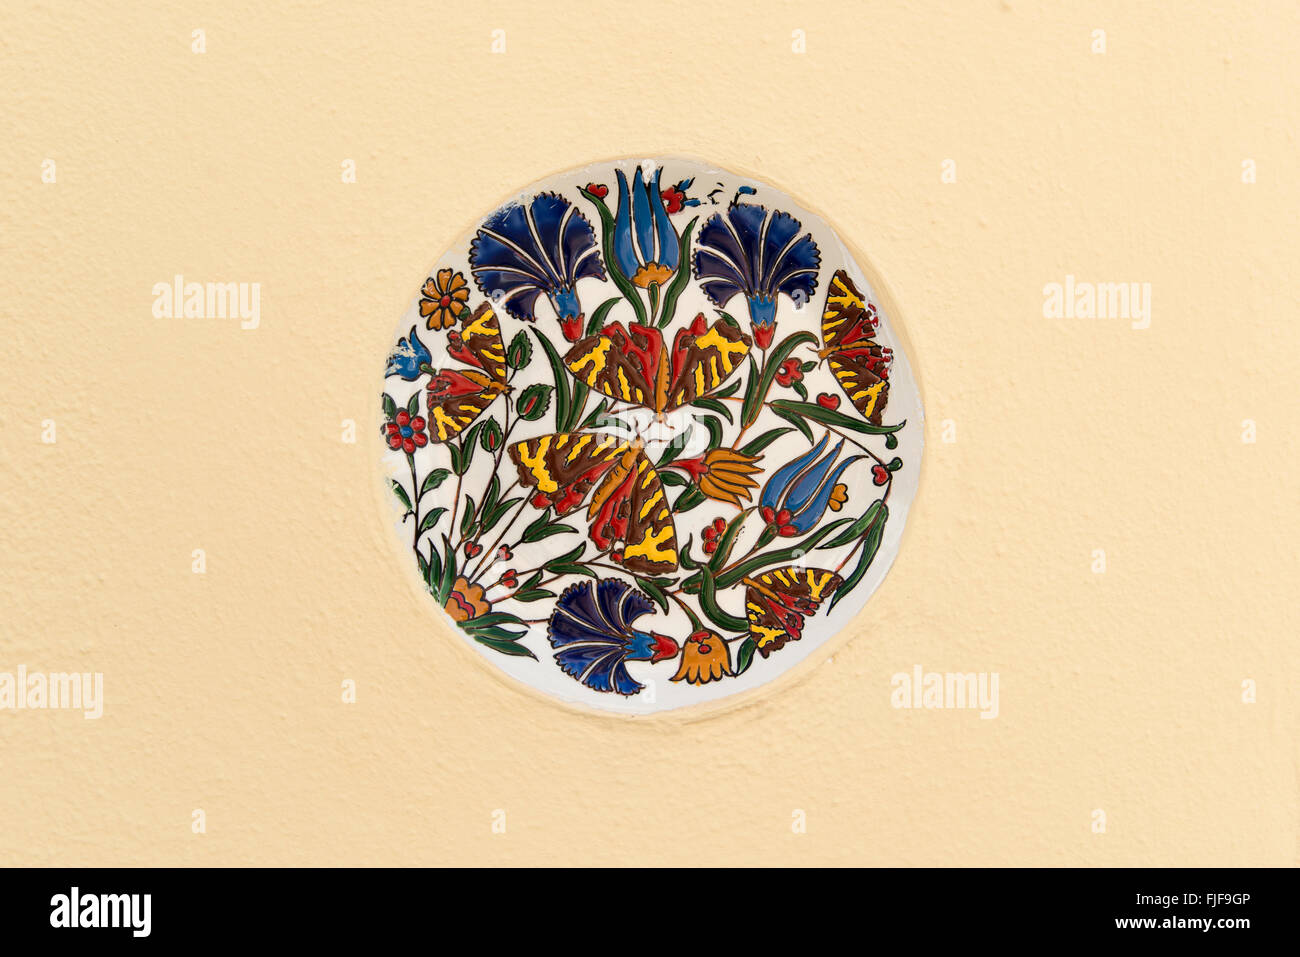 Plate Floral Ceramic Stock Photos & Plate Floral Ceramic Stock ...